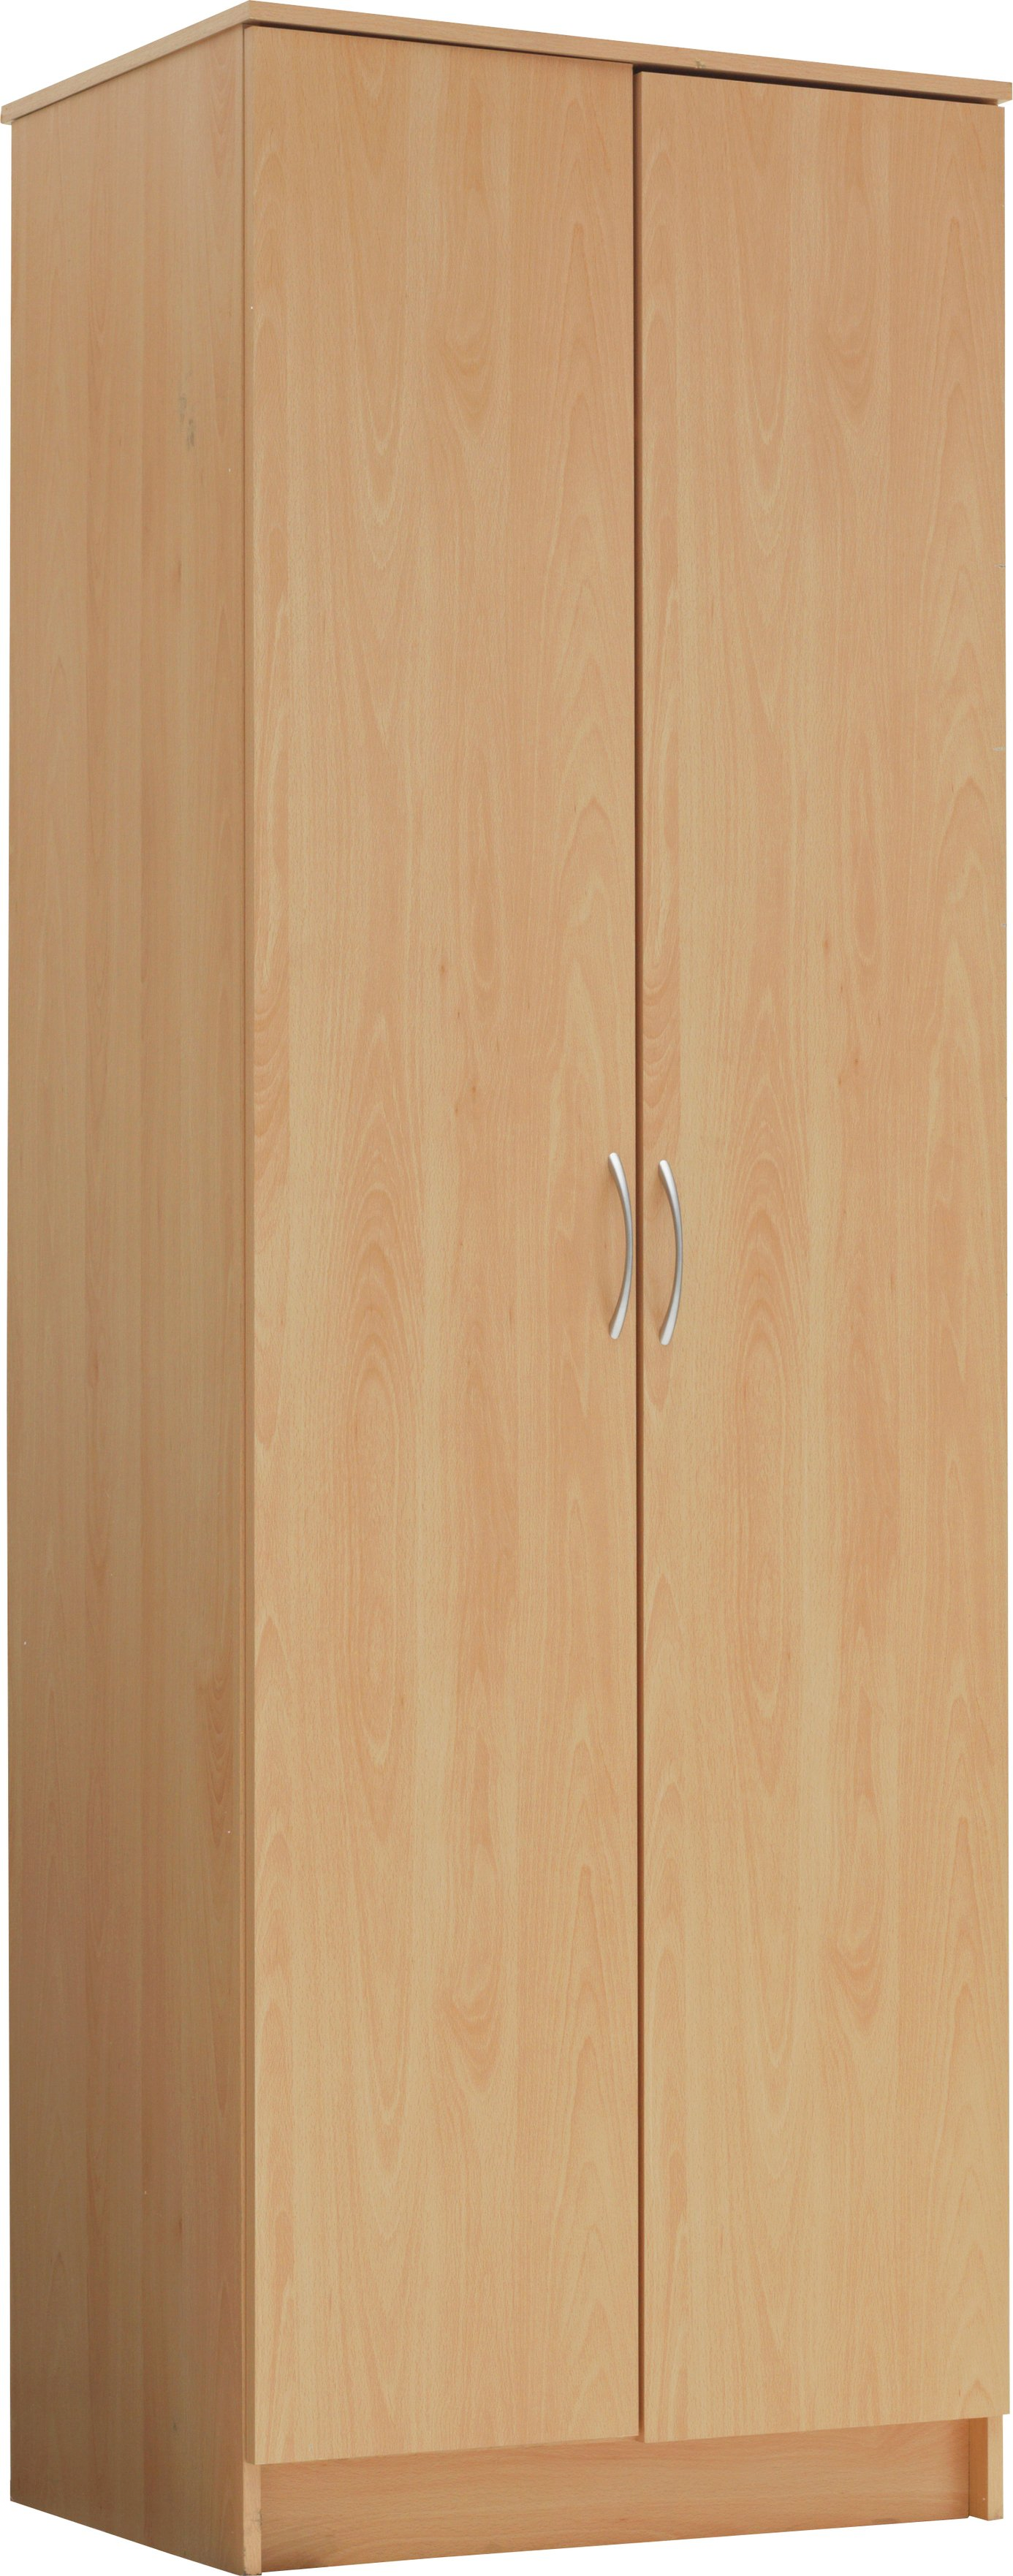 Argos Home Cheval 2 Door Wardrobe - Beech Effect